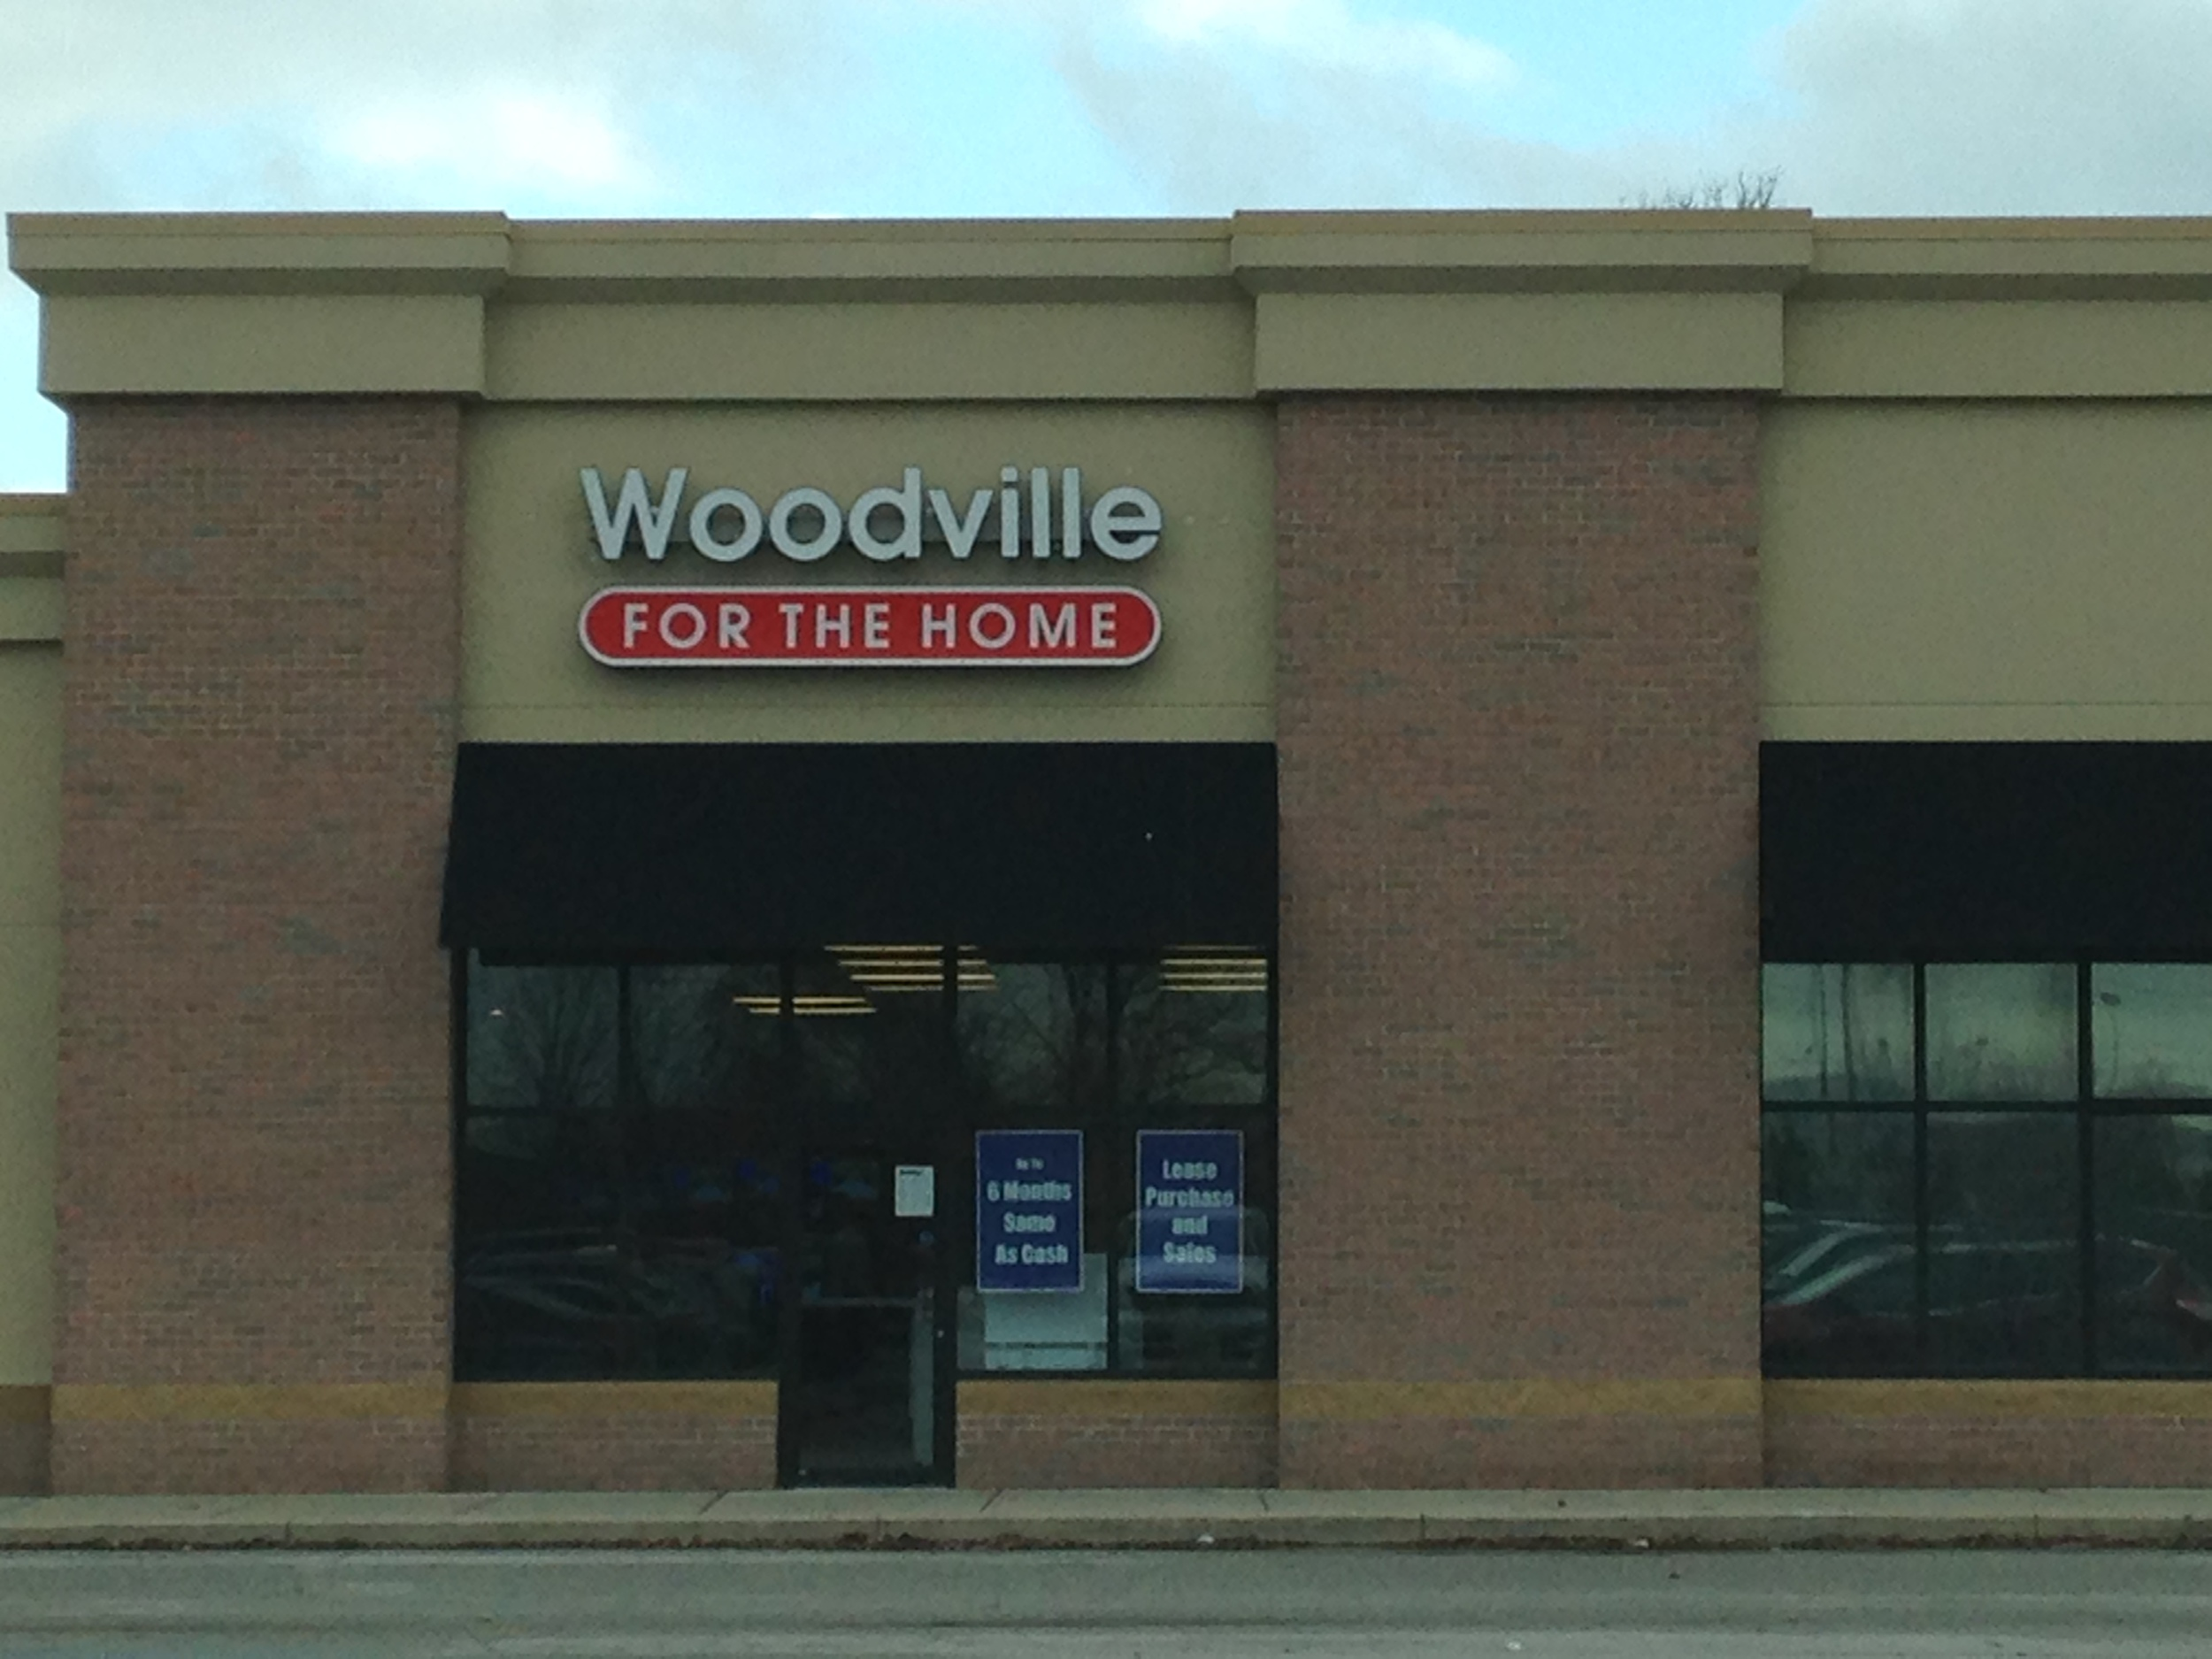 WOODVILLE FOR THE HOME